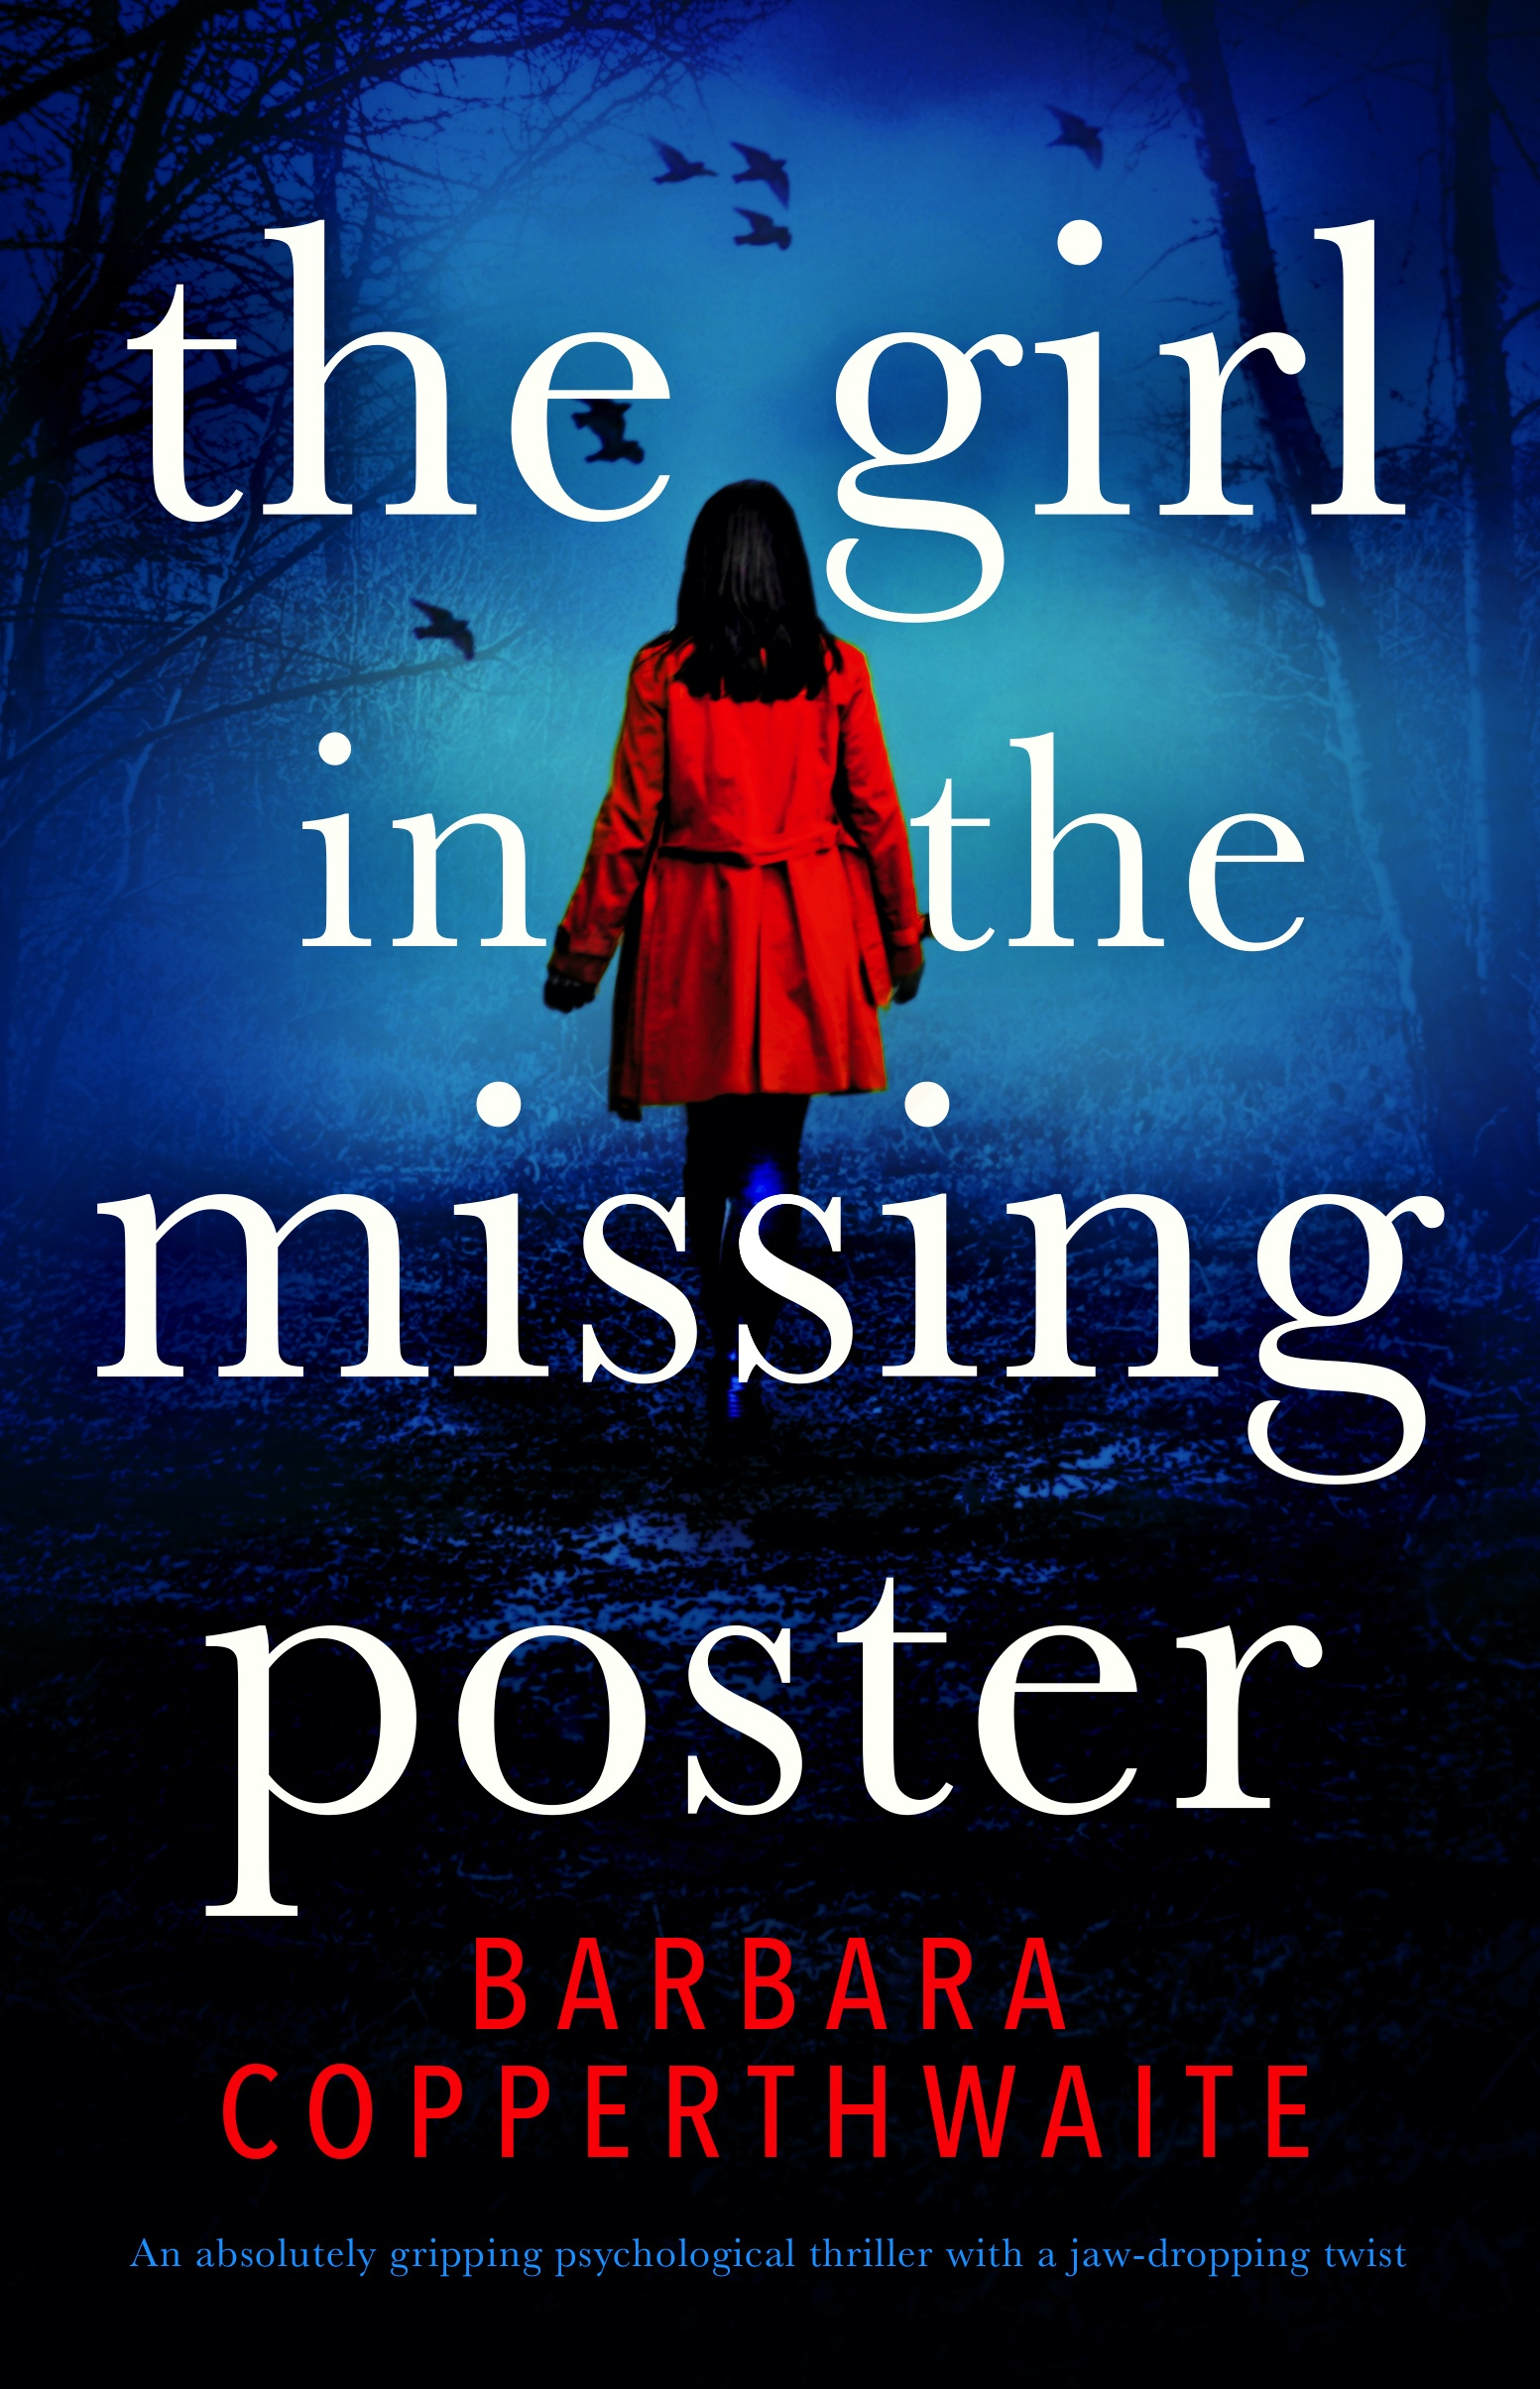 The Girl in the Missing Poster book cover